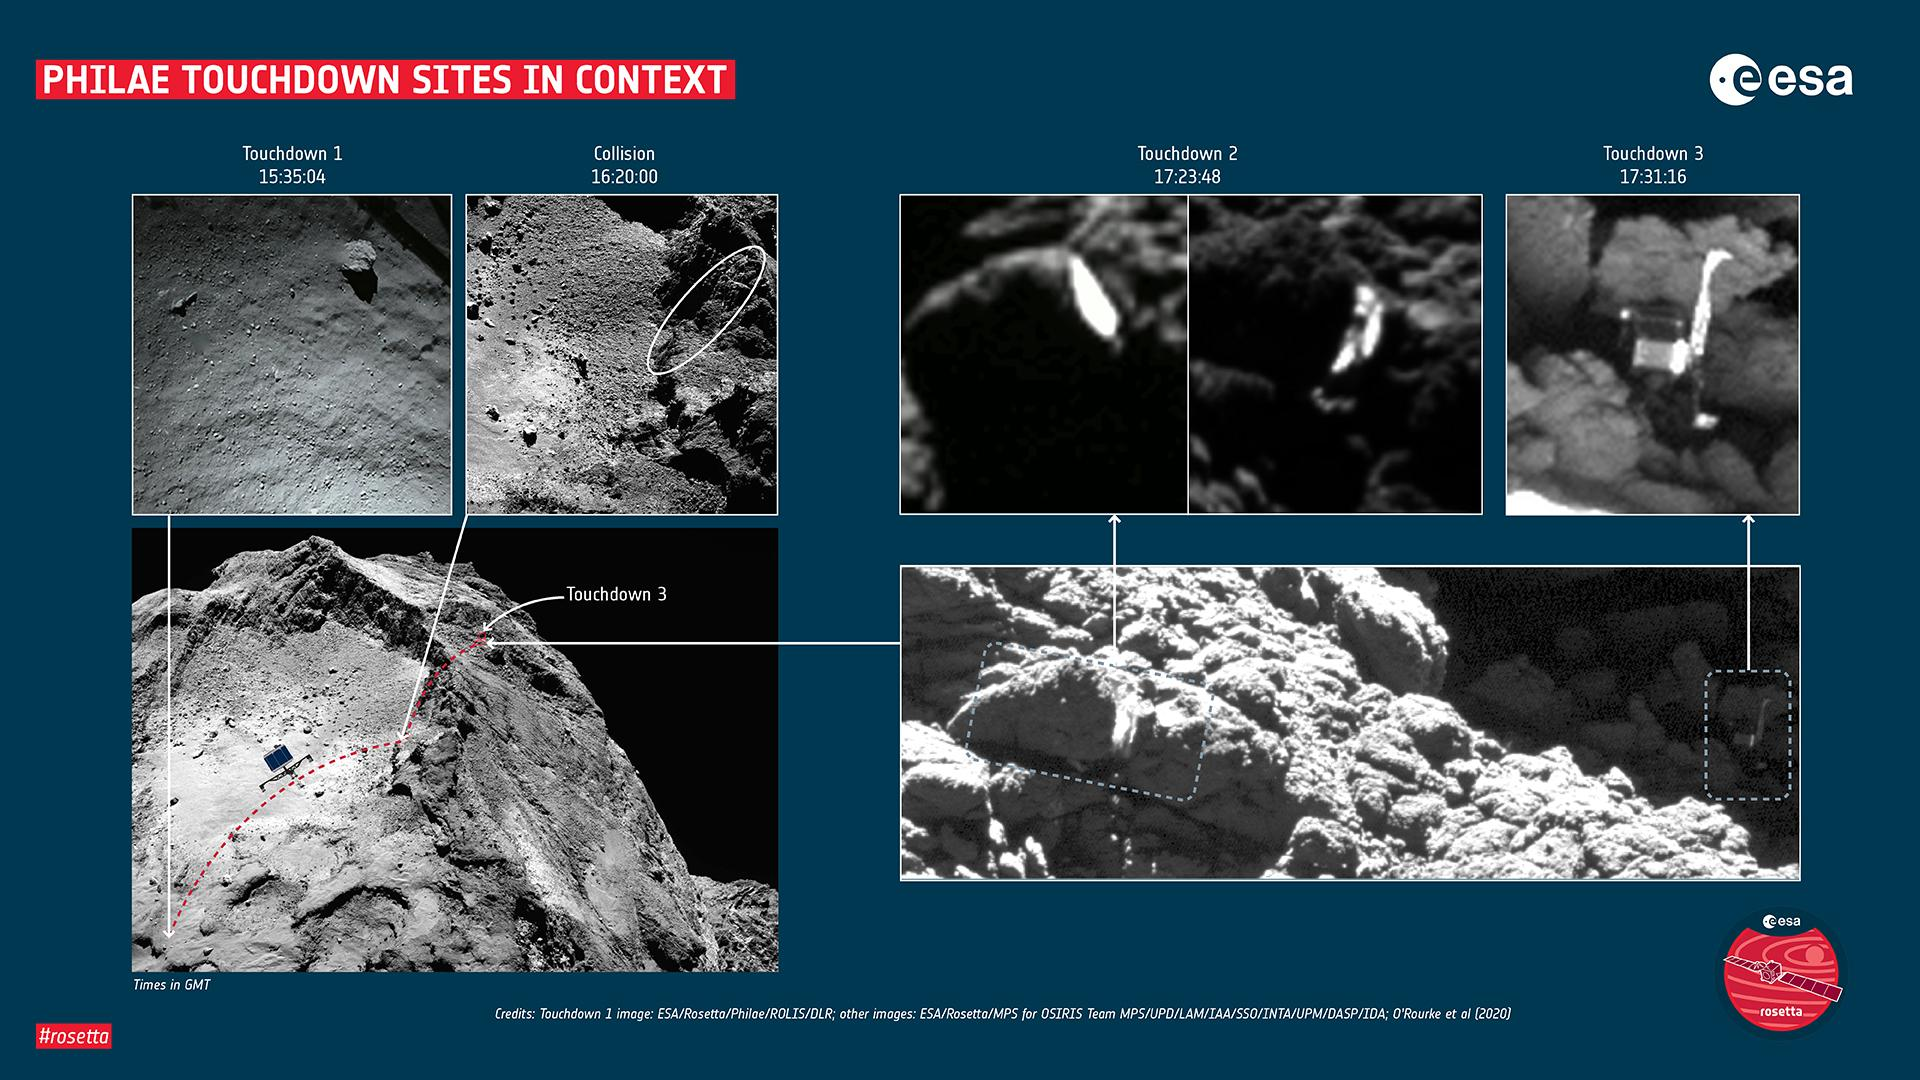 Philae's contact with the comet put into regional context